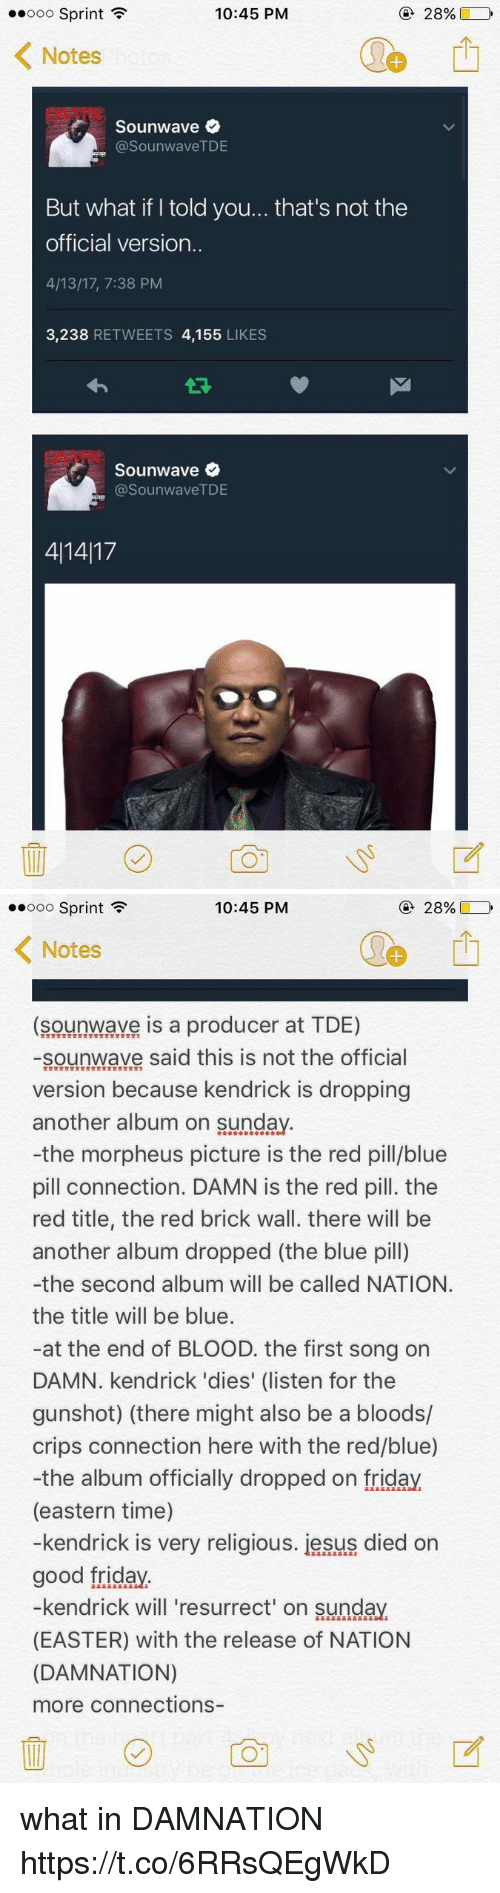 Bloods, Crips, and Easter: 10:45 PM  Ooo Sprint  F  28%  Notes  Sounwave  asounwaveTDE  But what if told you... that's not the  official version.  4/13/17, 7:38 PM  3,238  RETWEETS 4,155  LIKES  Sounwave  (a SounwaveTDE  411417   10:45 PM  28%,  Ooo Sprint  F  K Notes  (sounwave is a producer at TDE)  sounwave said this is not the official  version because kendrick is dropping  another album on Sunday  -the morpheus picture is the red pill/blue  pill connection. DAMN is the red pill. the  red title, the red brick wall. there will be  another album dropped (the blue pill)  -the second album will be called NATION.  the title will be blue.  at the end of BLOOD. the first song on  DAMN. kendrick 'dies' (listen for the  gunshot) (there might also be a bloods/  crips connection here with the red/blue)  -the album officially dropped on friday  (eastern time)  -kendrick is very religious. iesus died on  good friday  kendrick will resurrect on Sunday.  (EASTER) with the release of NATION  (DAMNATION)  more connections what in DAMNATION https://t.co/6RRsQEgWkD